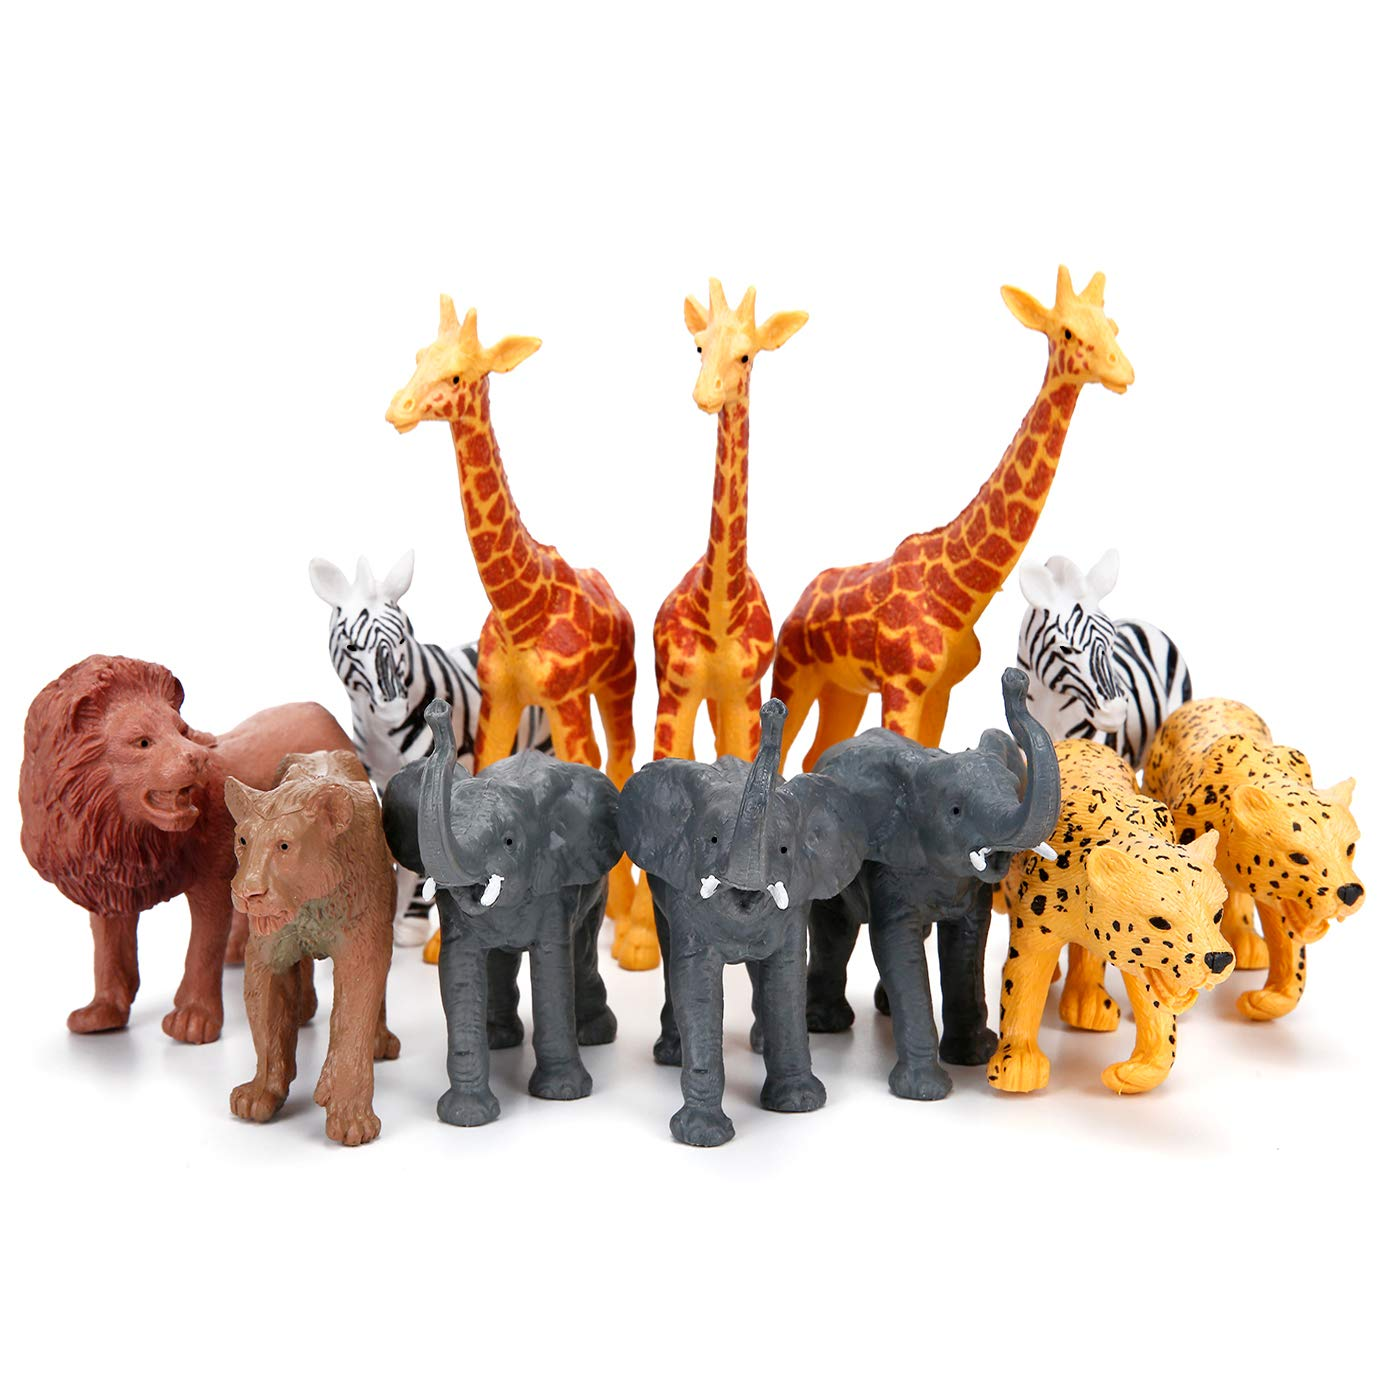 Figurines Realistic Elephant Educational Playsets